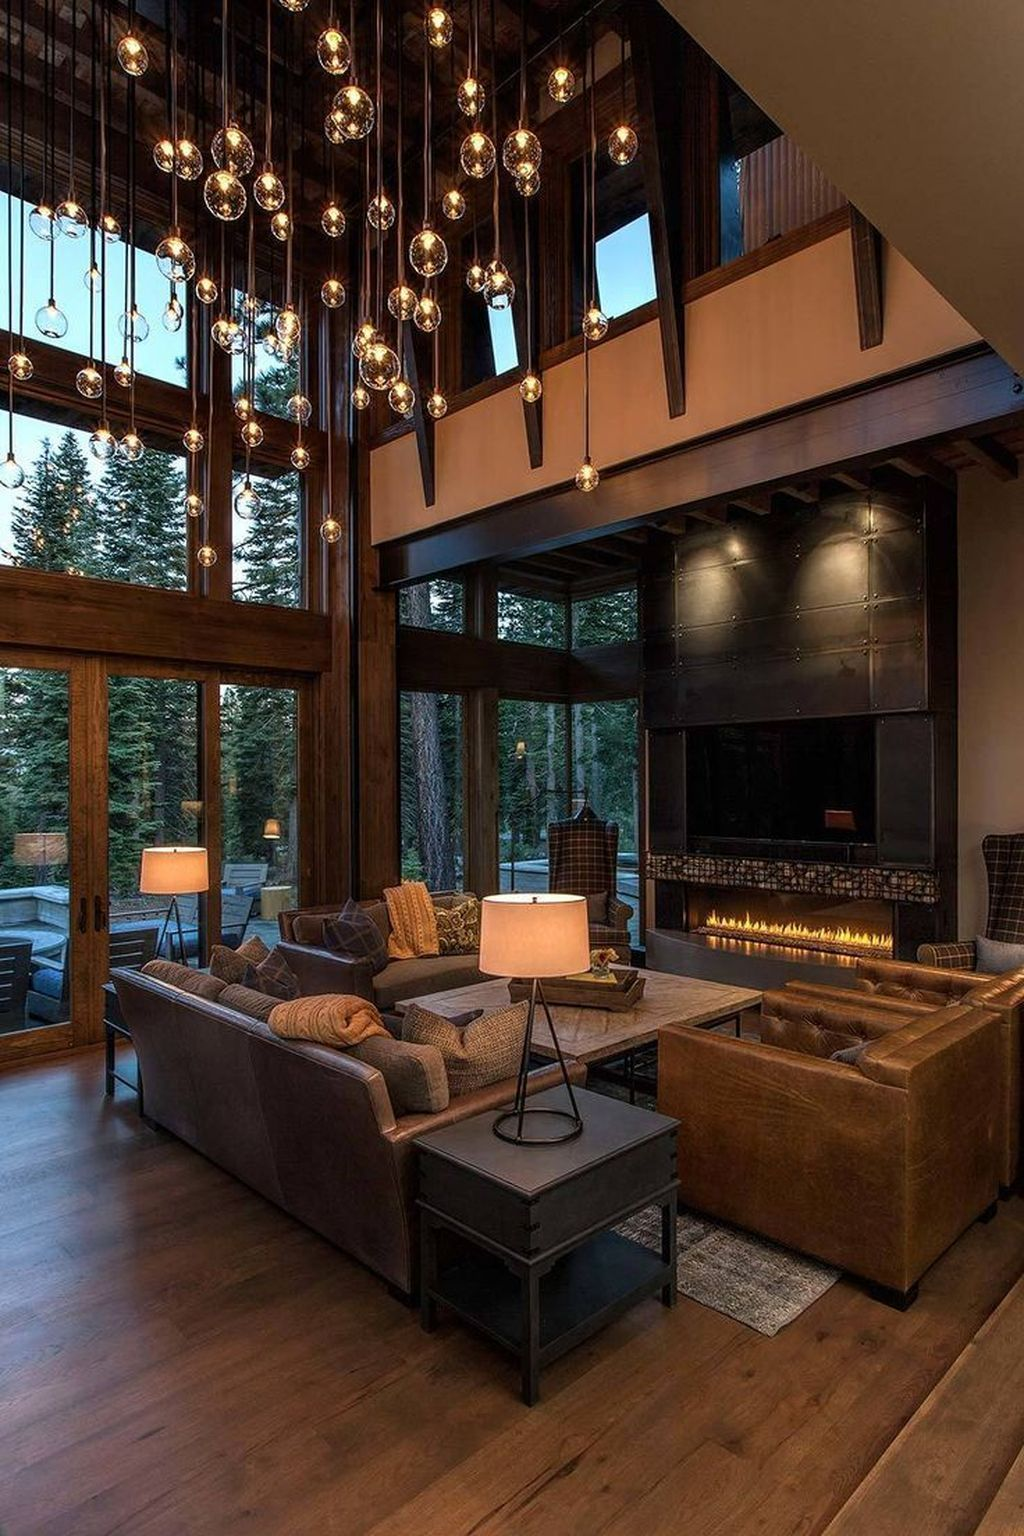 Home interior design business plan  the best rustic decor ideas match for any modern home design